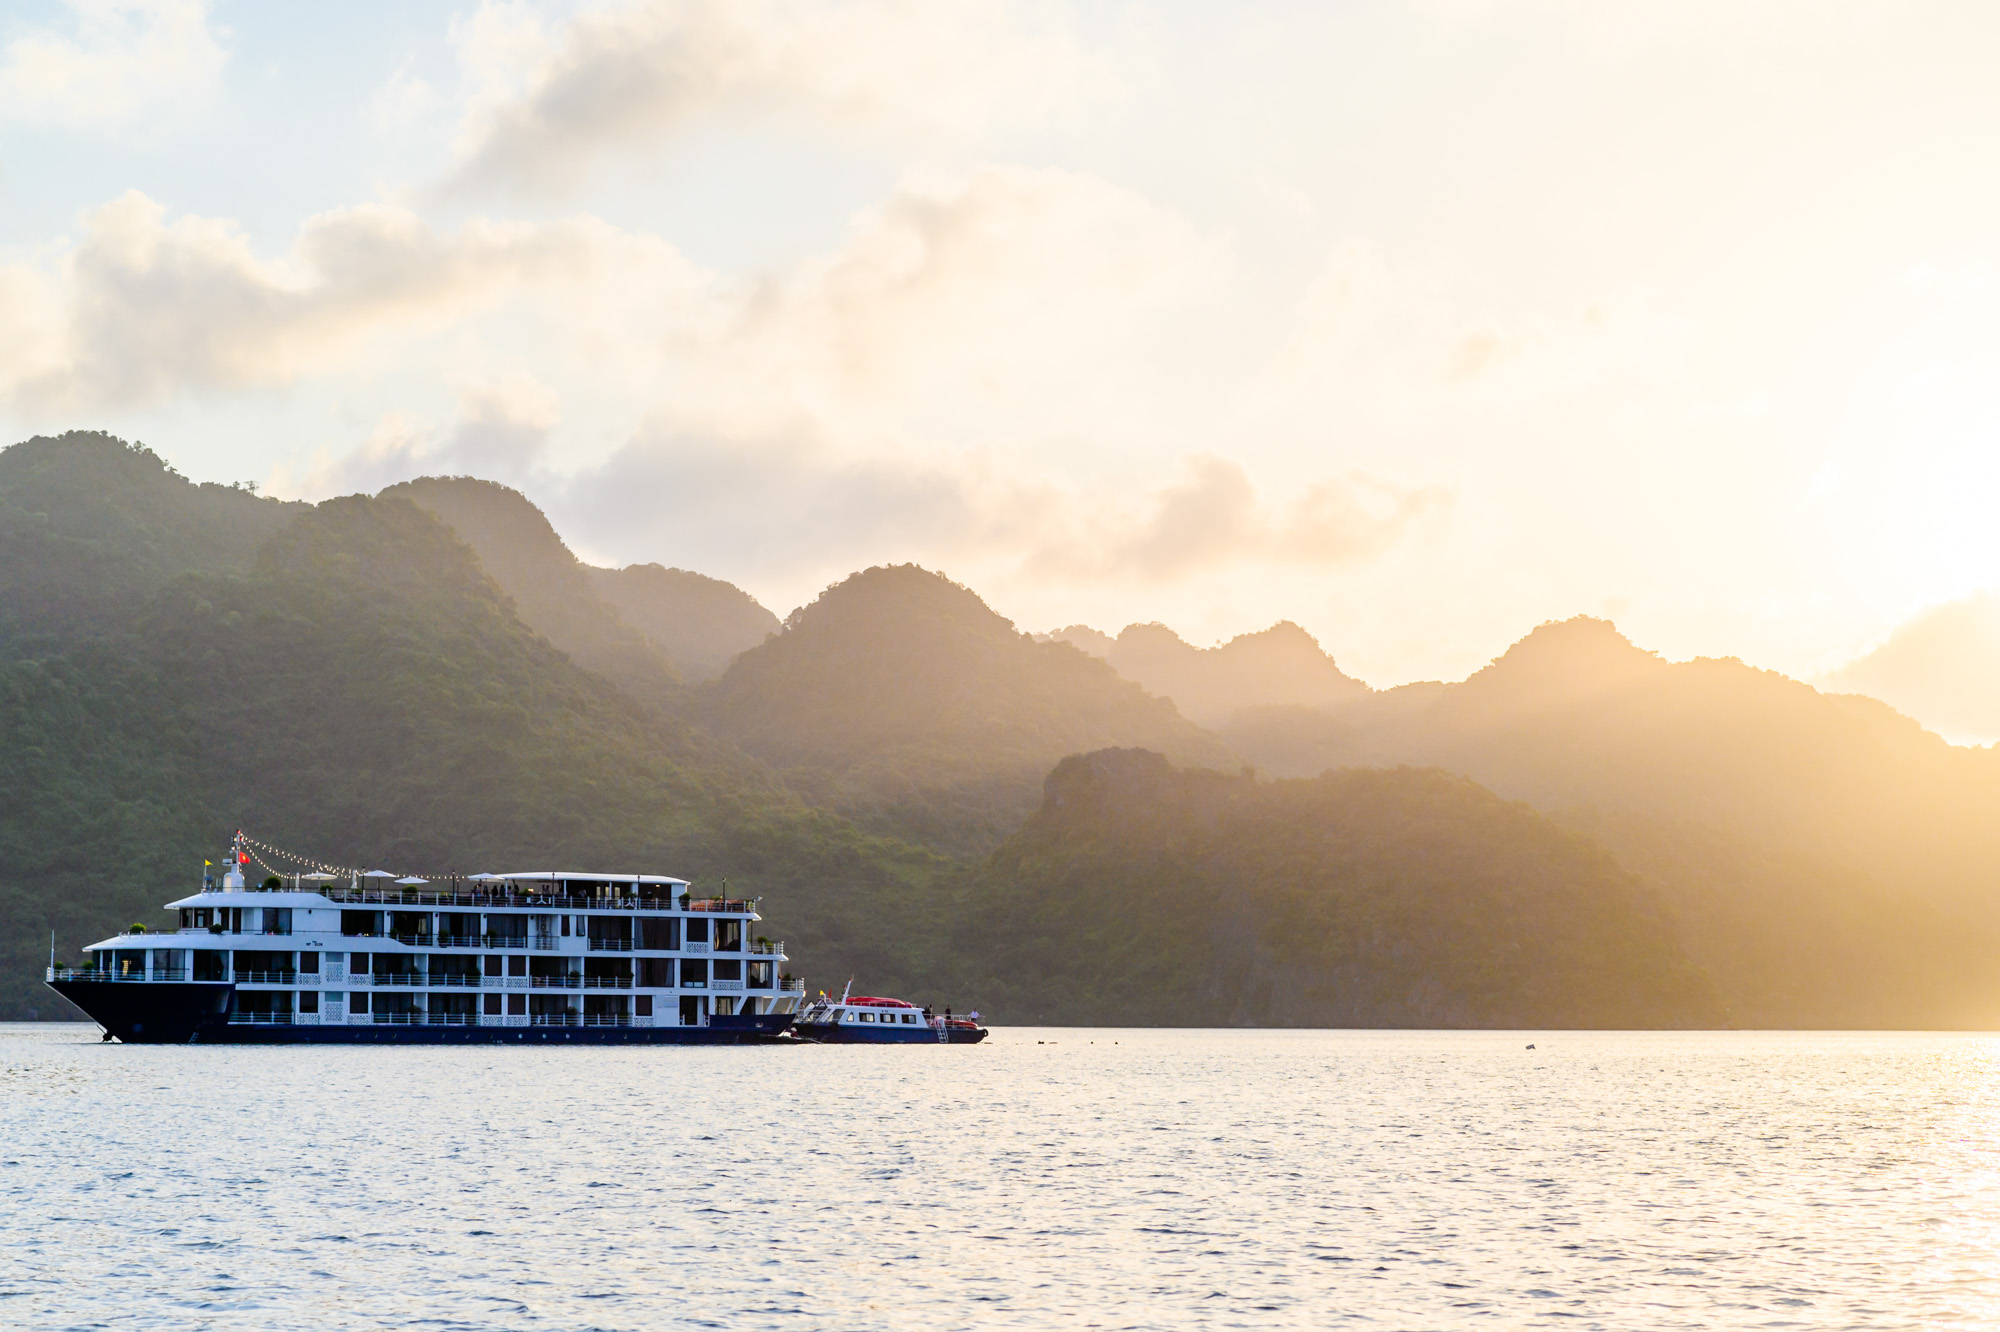 Cruise in Lan Ha Bay -  5 Must-see Attractions in Indochina 2020